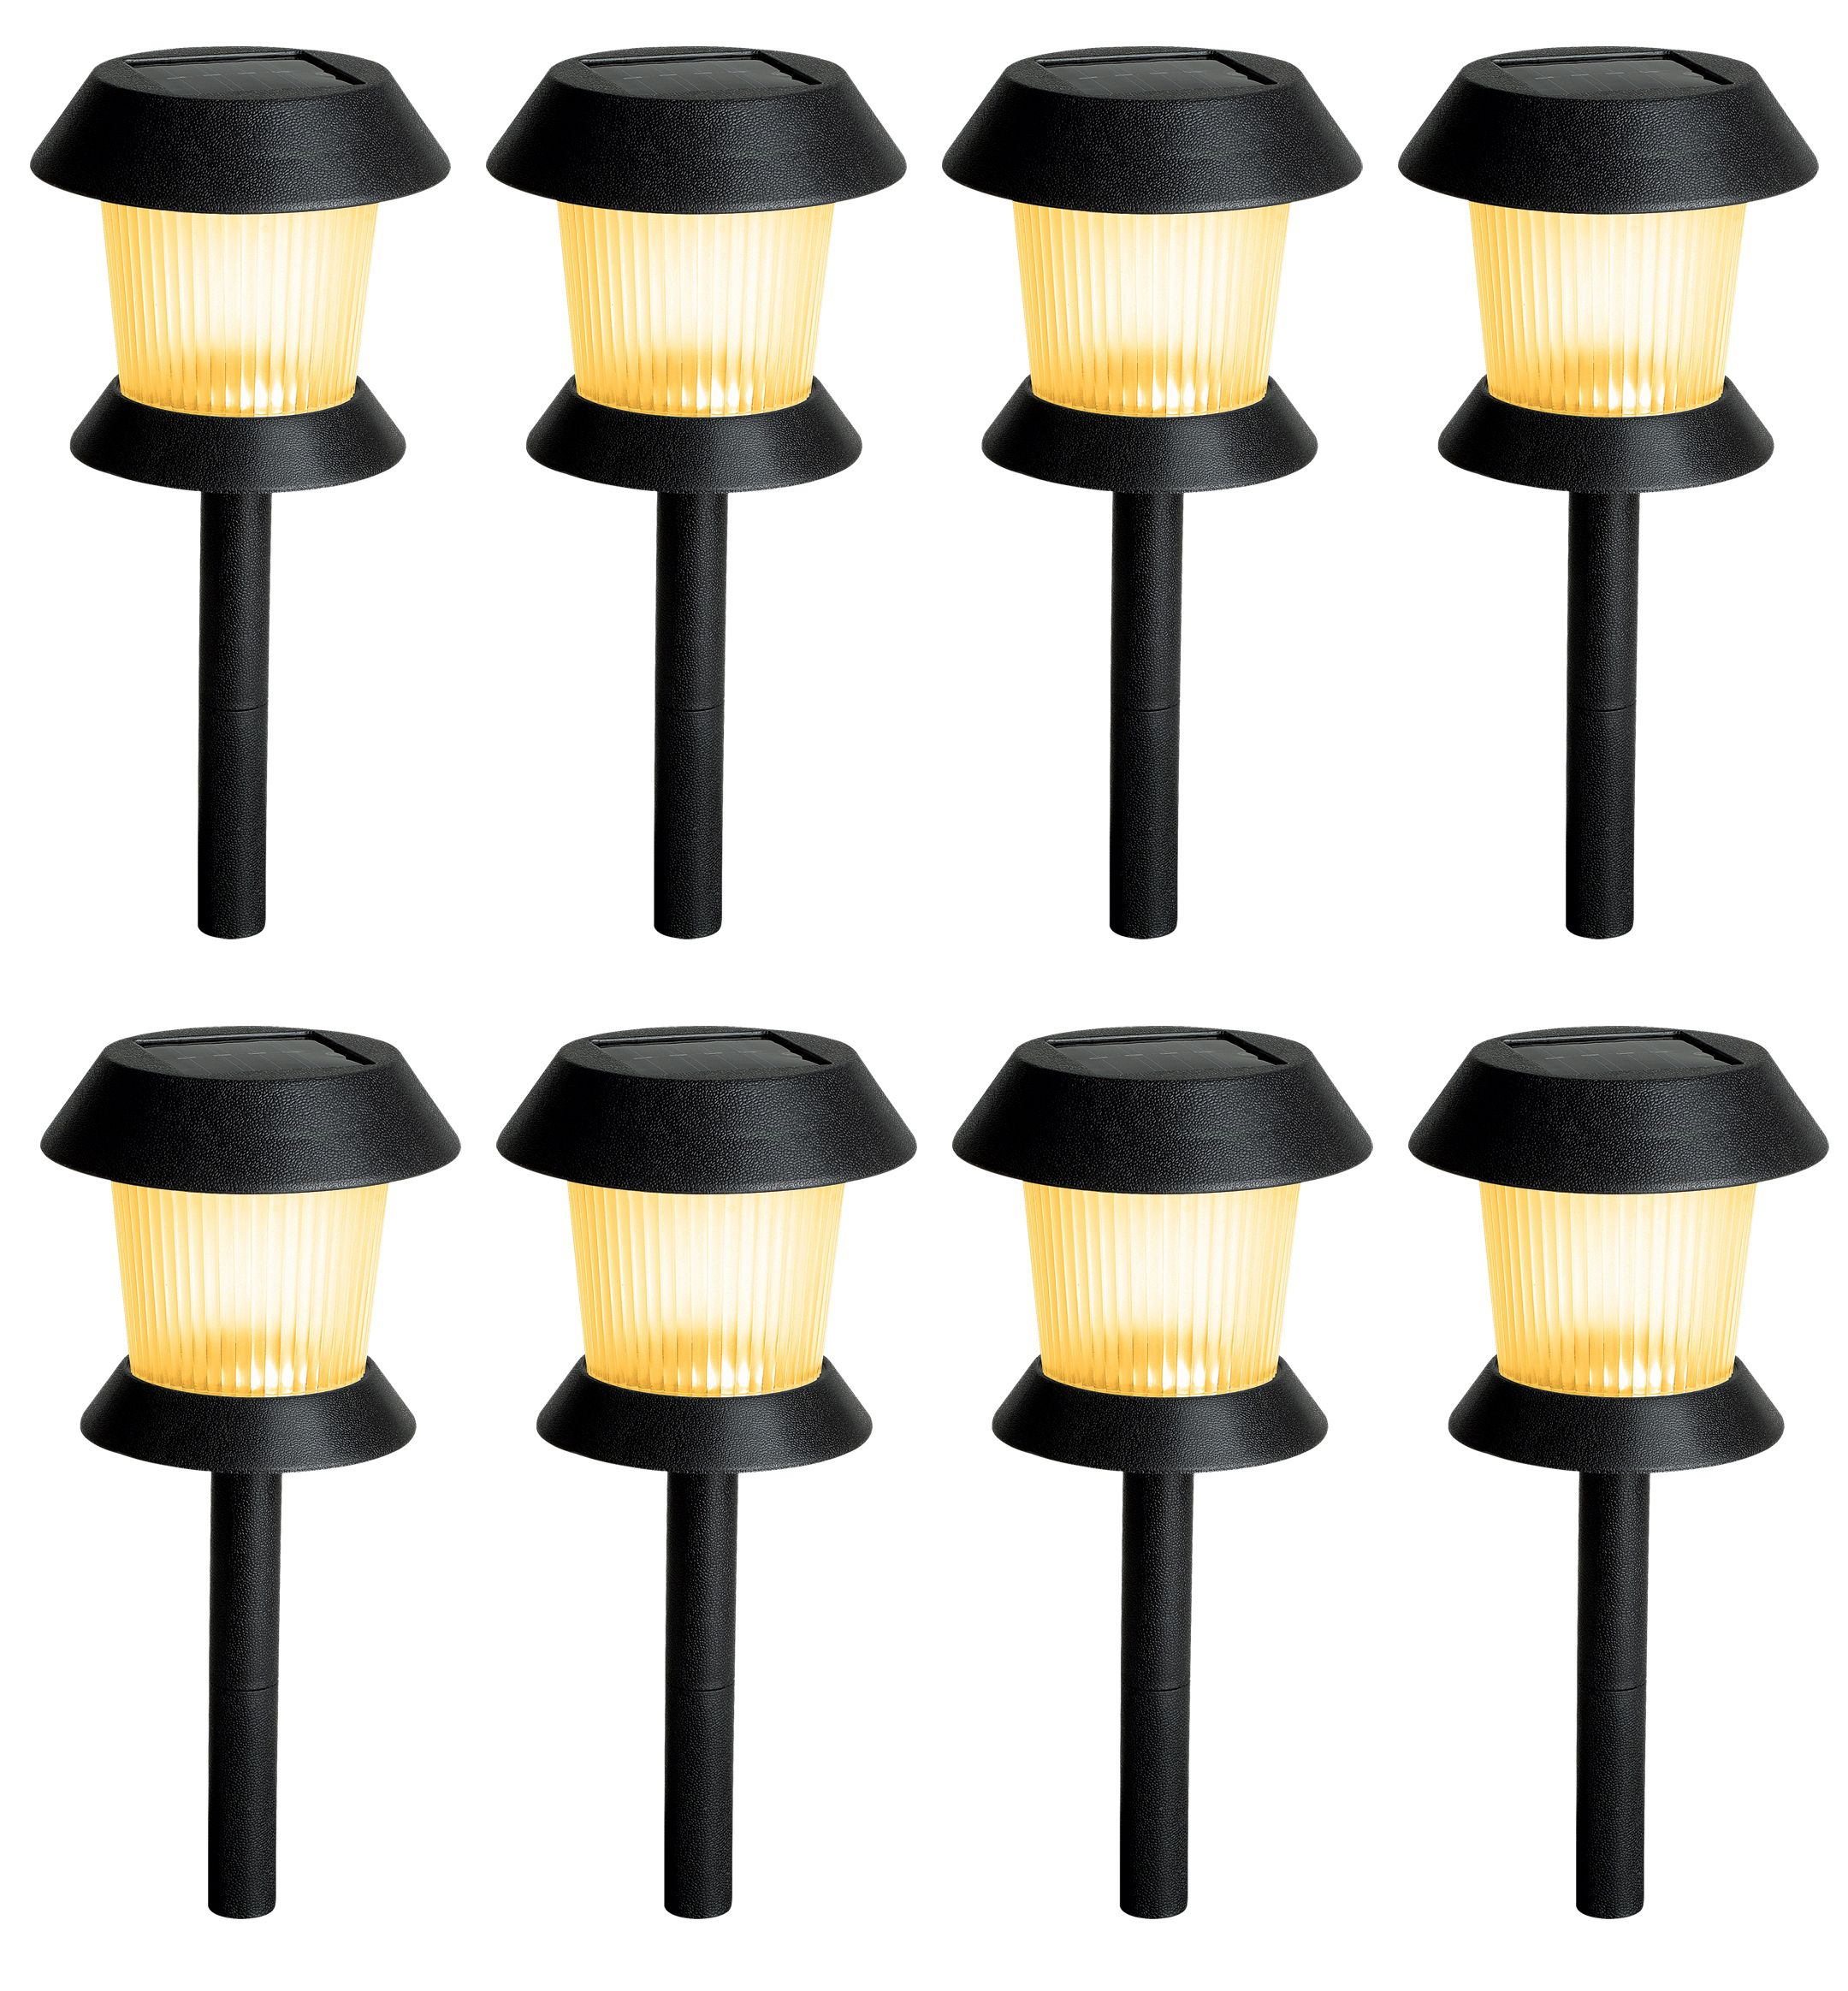 Westinghouse solar lights 8 pk outdoor living outdoor lighting pathway lighting - Westinghouse and living ...